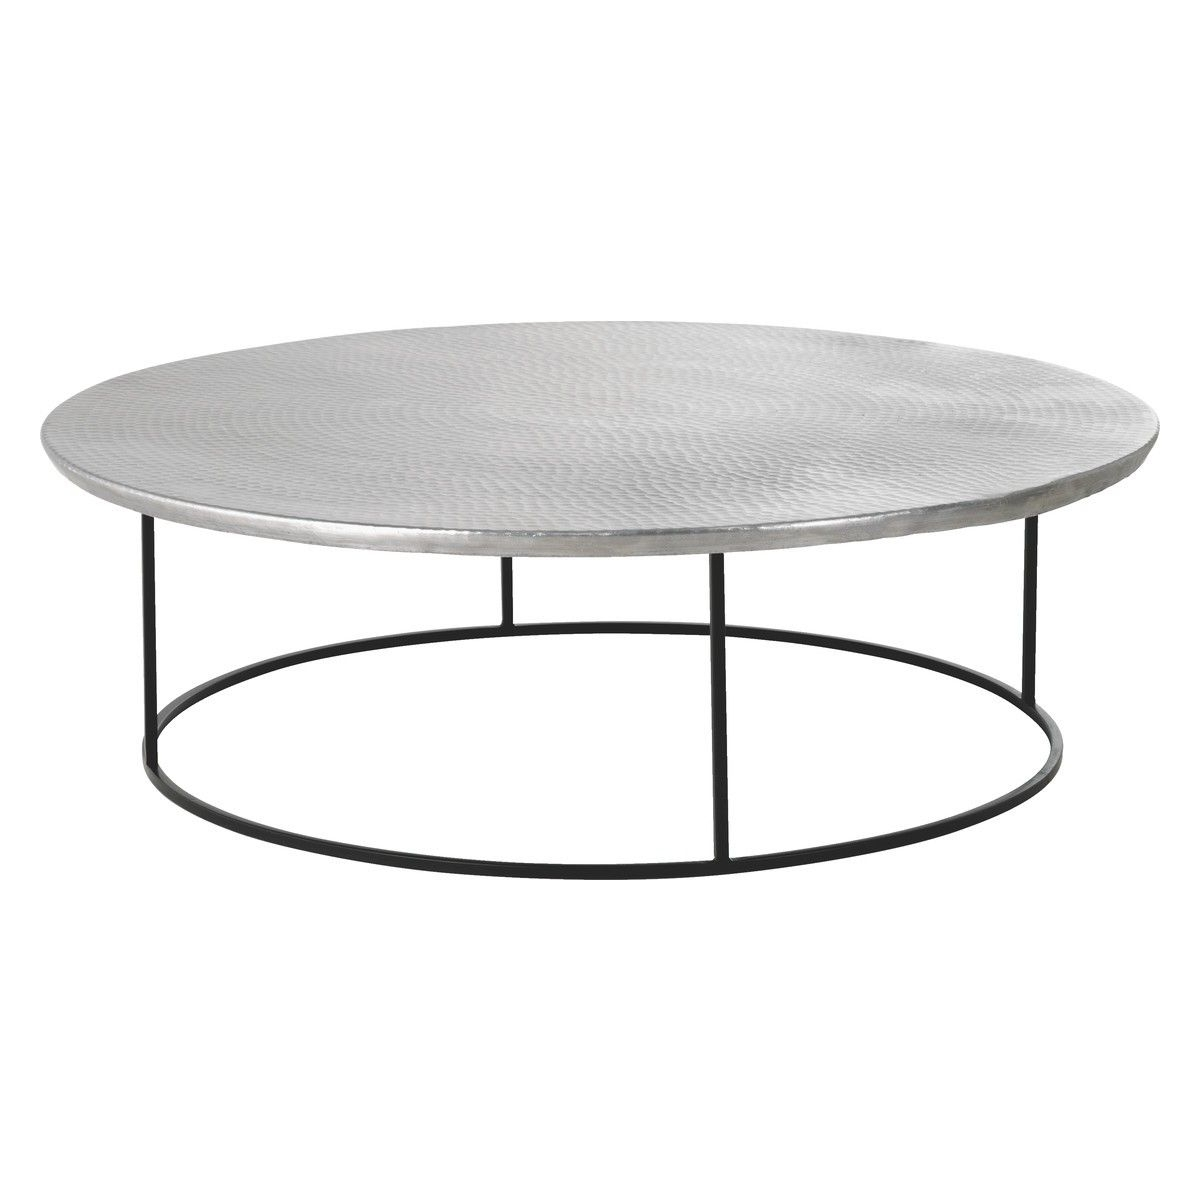 Orrico Hammered Aluminium Coffee Table With Black Frame (View 18 of 20)